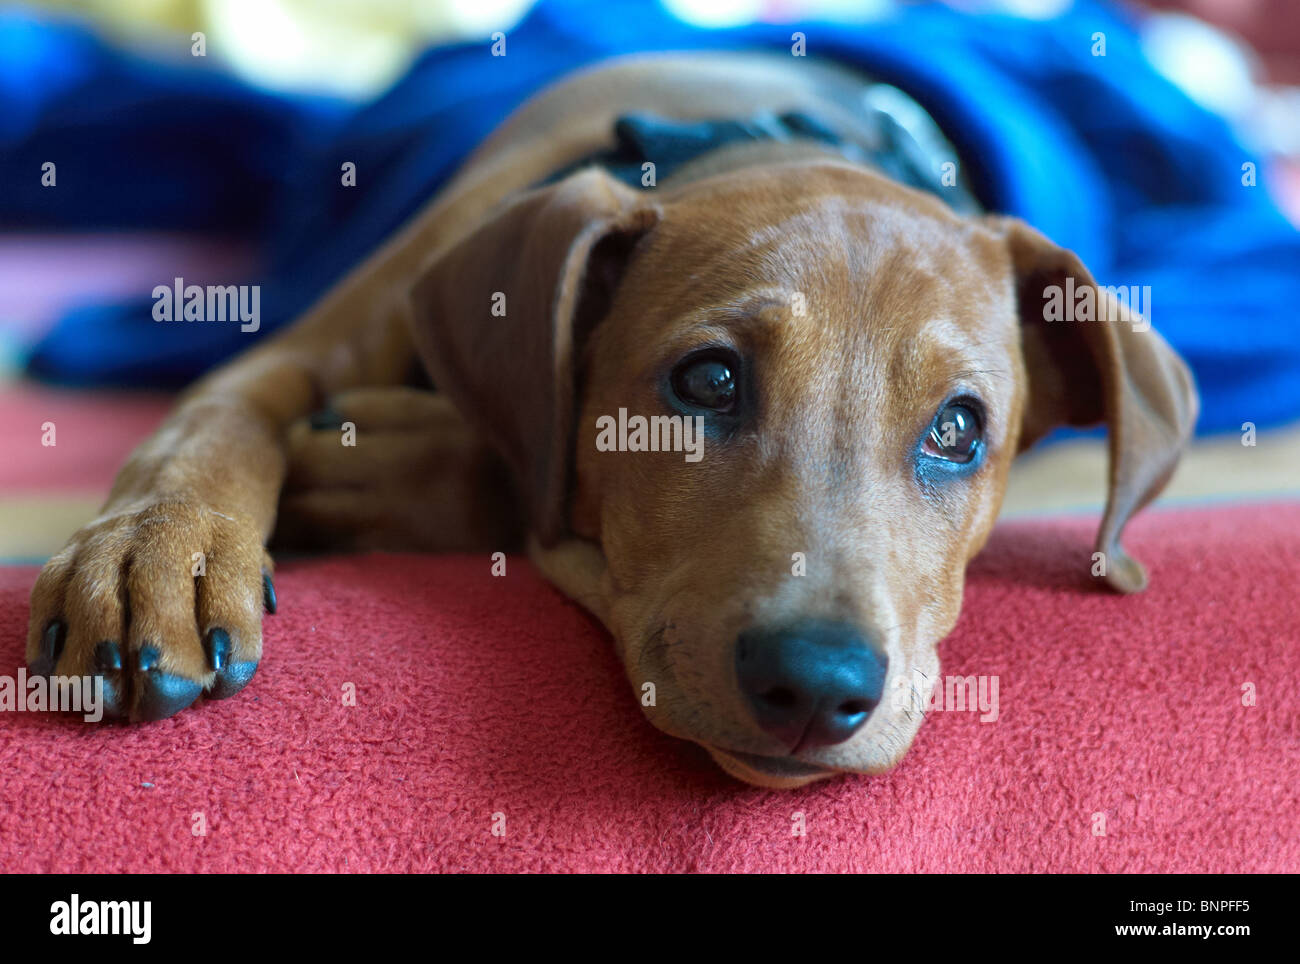 A dog lying on a blanket and looking dreamily - Stock Image